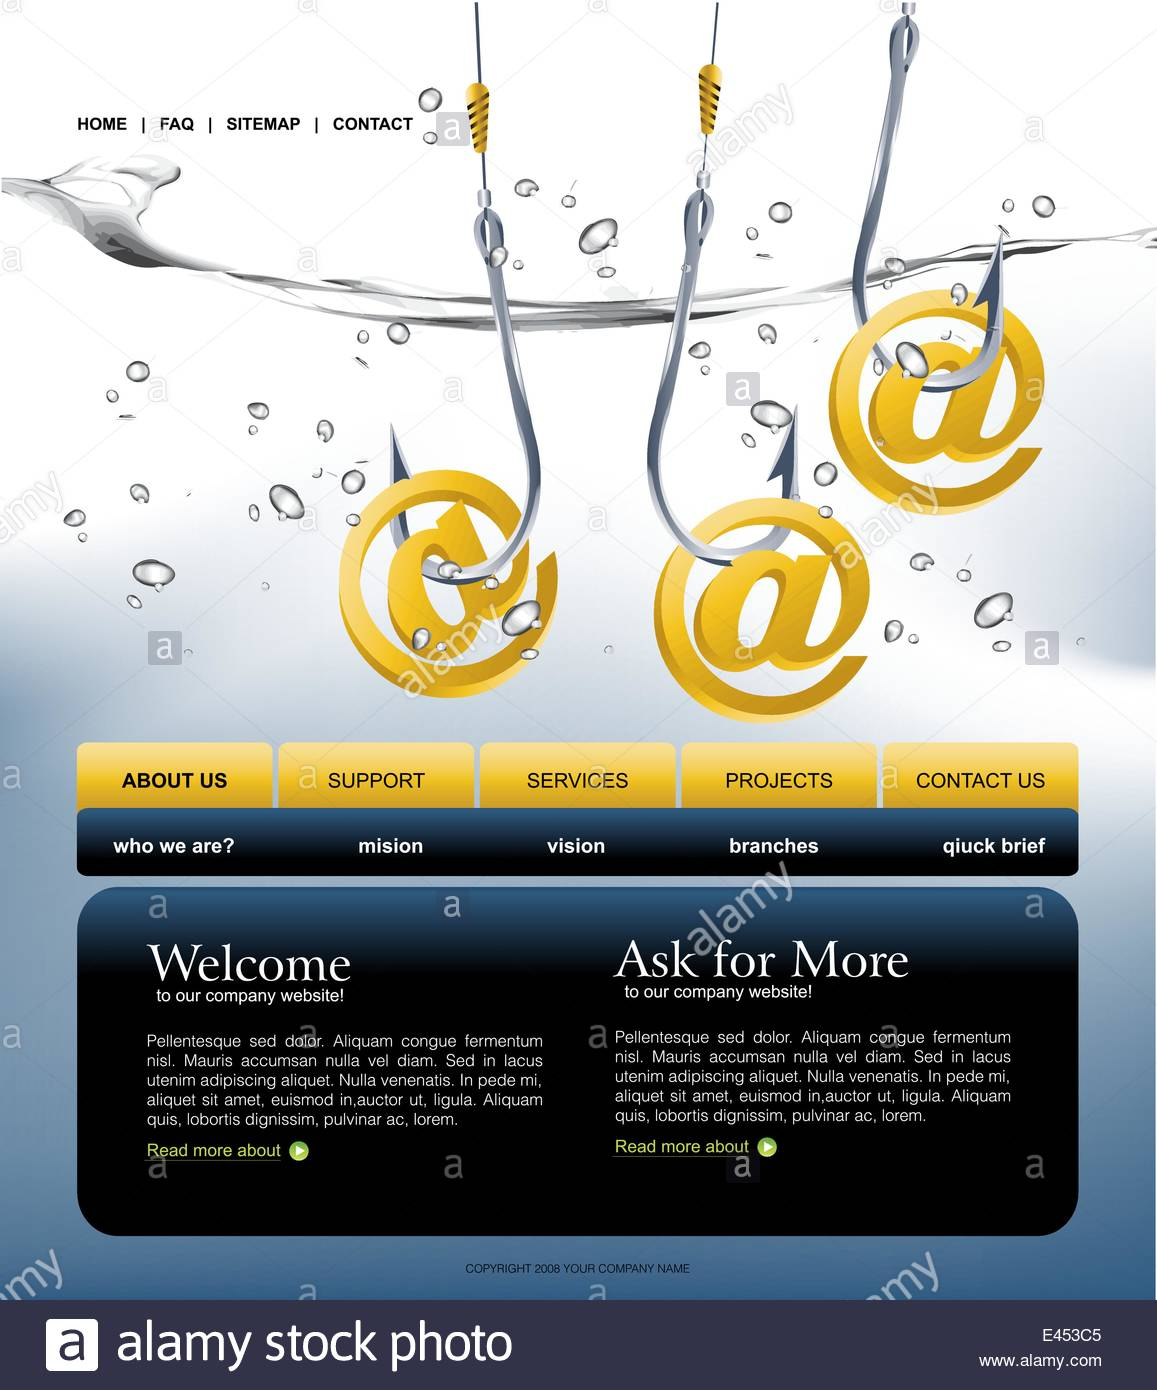 Website template easy to use in adobe photoshop flash or stock stock vector website template easy to use in adobe photoshop flash or illustrator to export it to html format just edit or replace text an pronofoot35fo Gallery